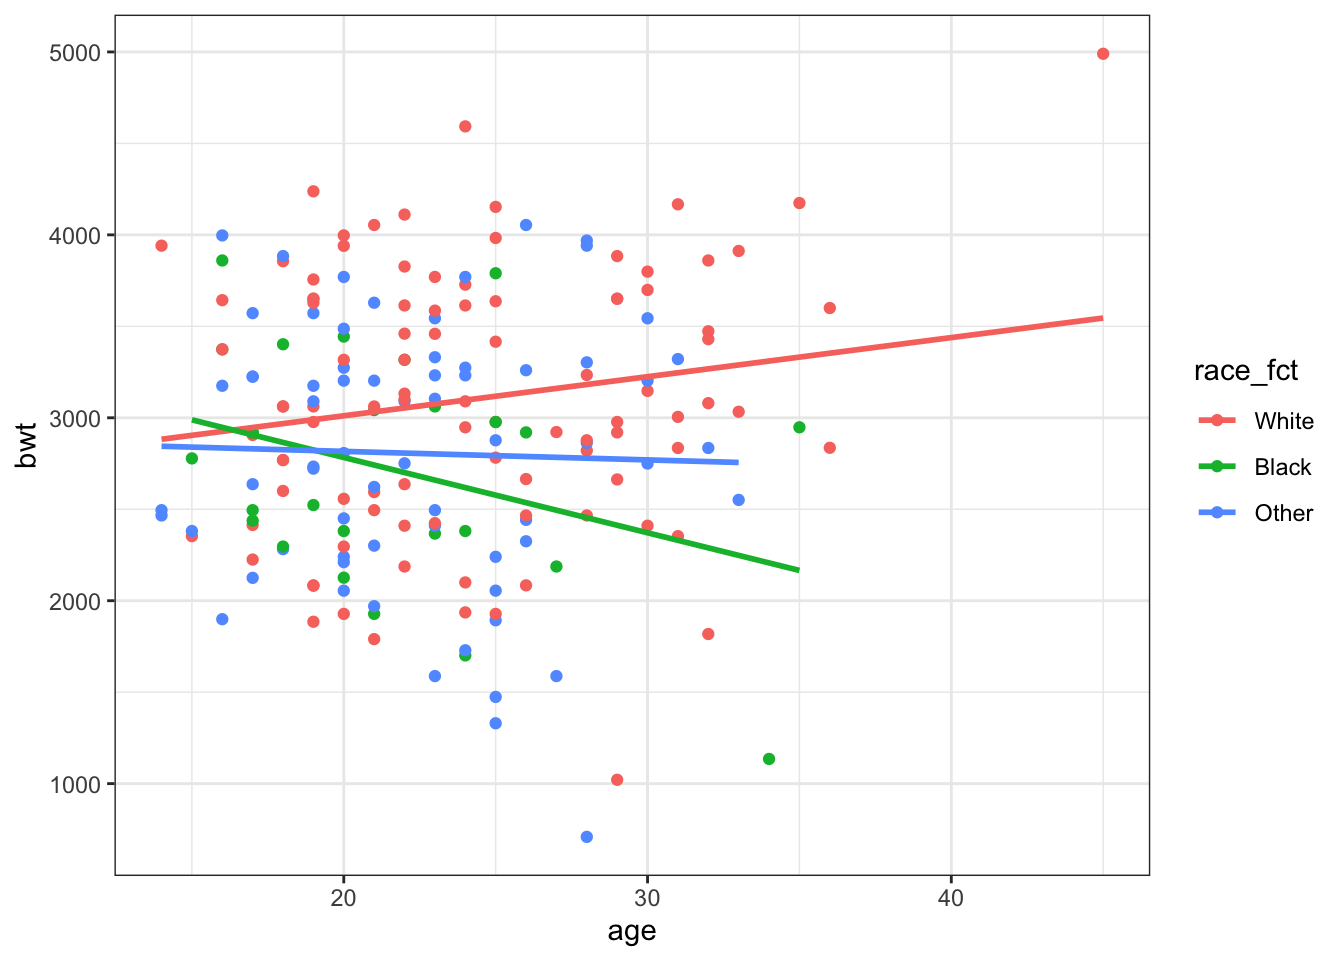 Age and Race Plot